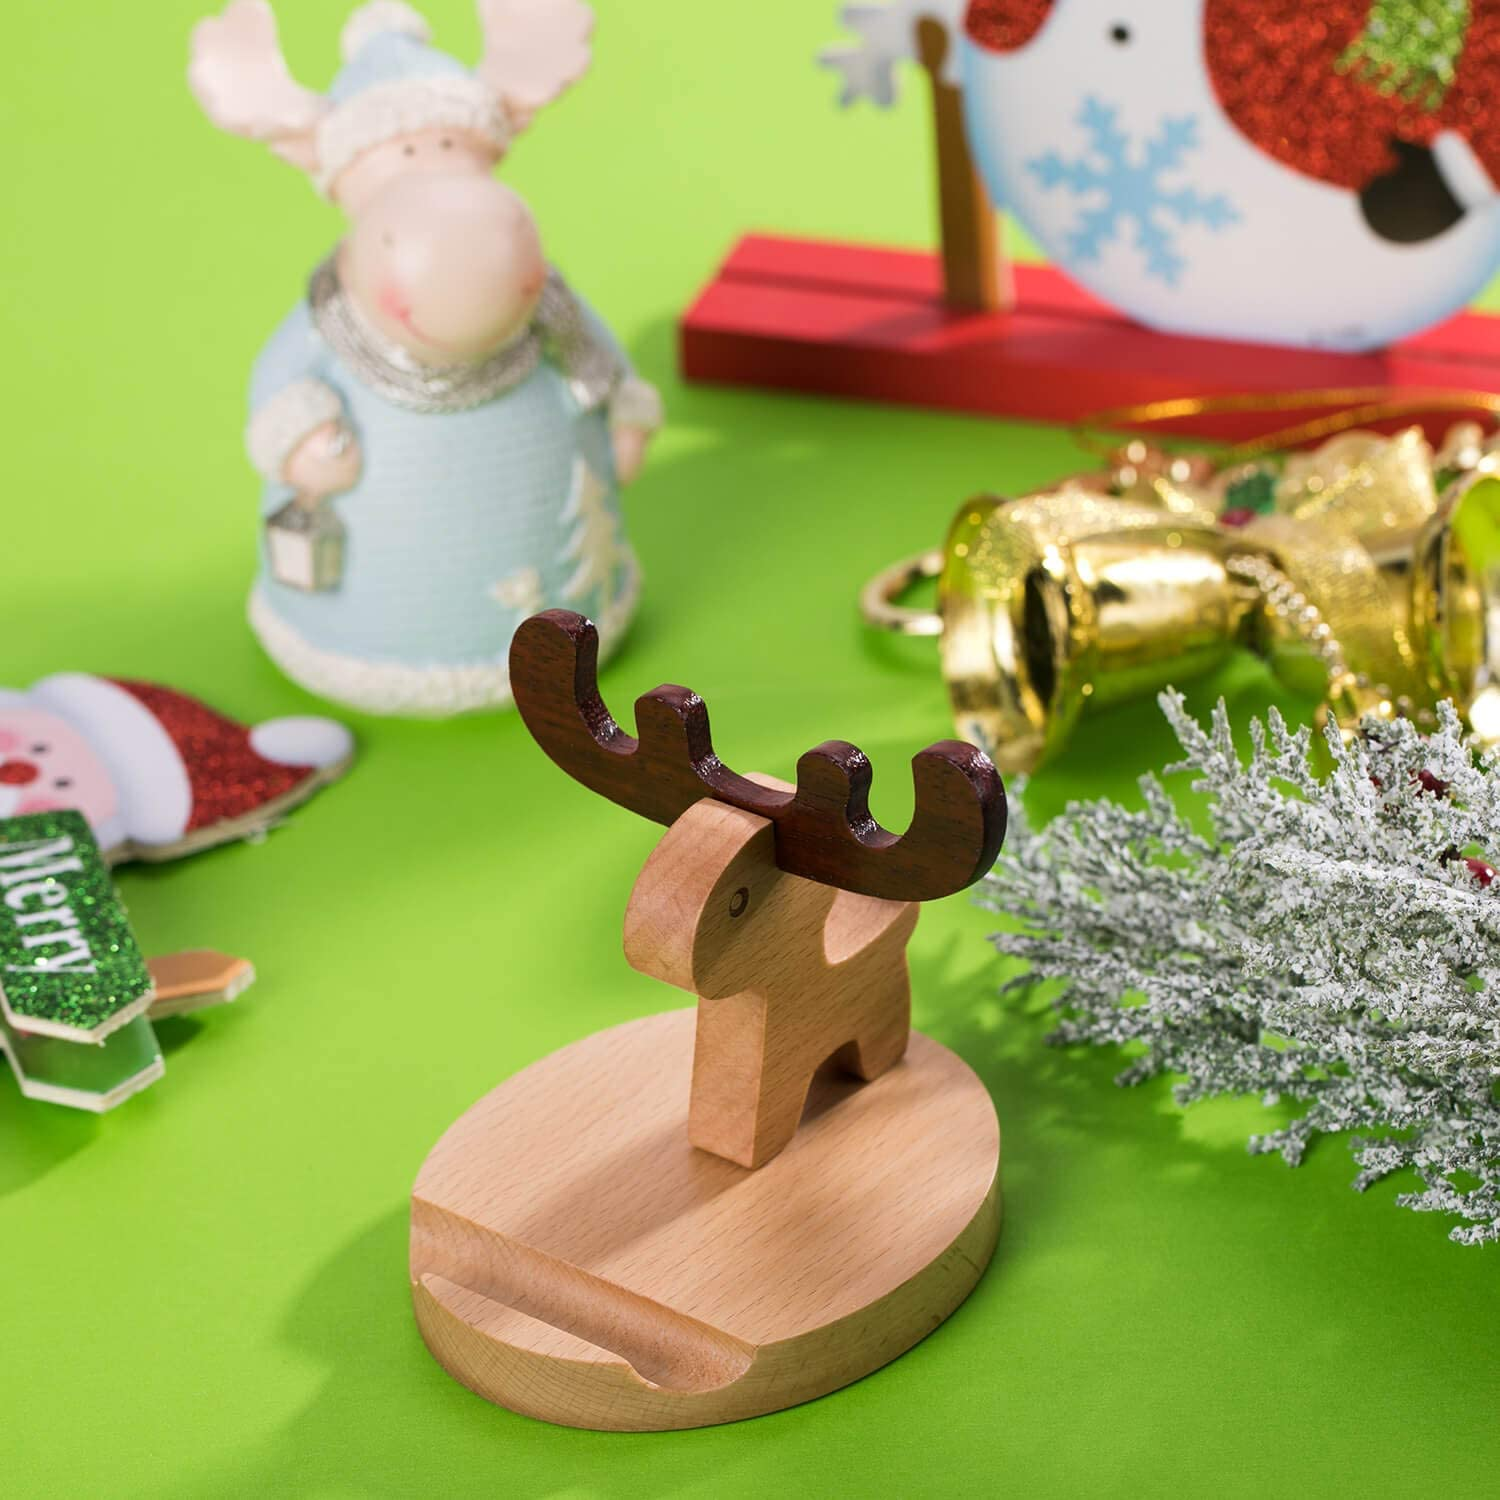 Deer Animal Phone Stand Phone Holder for Desk and Bed, Wood Cell Phone Stand Compatible with iPhone 11 Pro X Plus 8 7 6